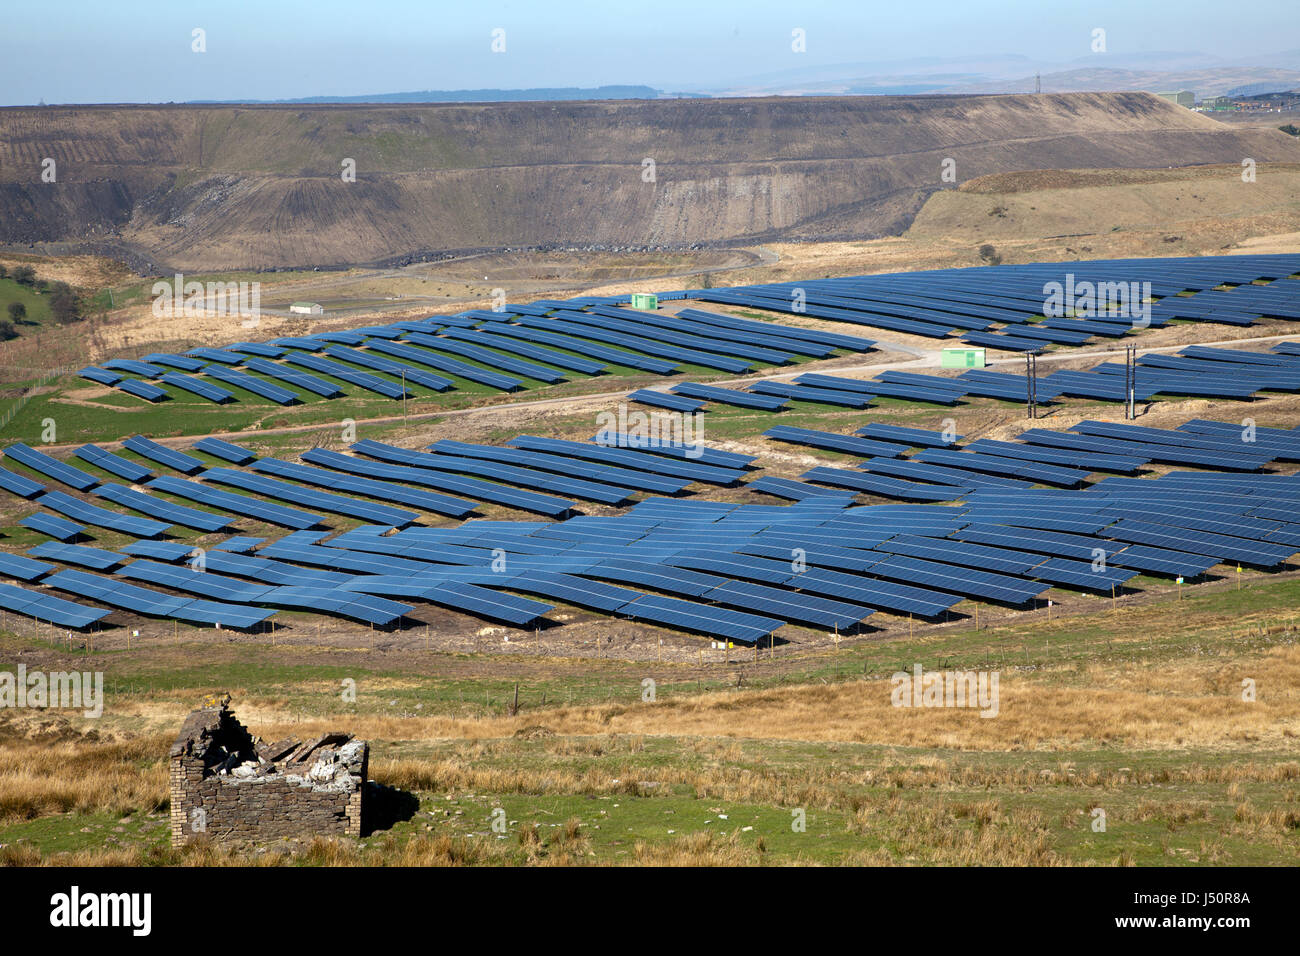 SolarPark next to Opencast coal mine showing clean green energy of solar power contrasting with destructive open Stock Photo